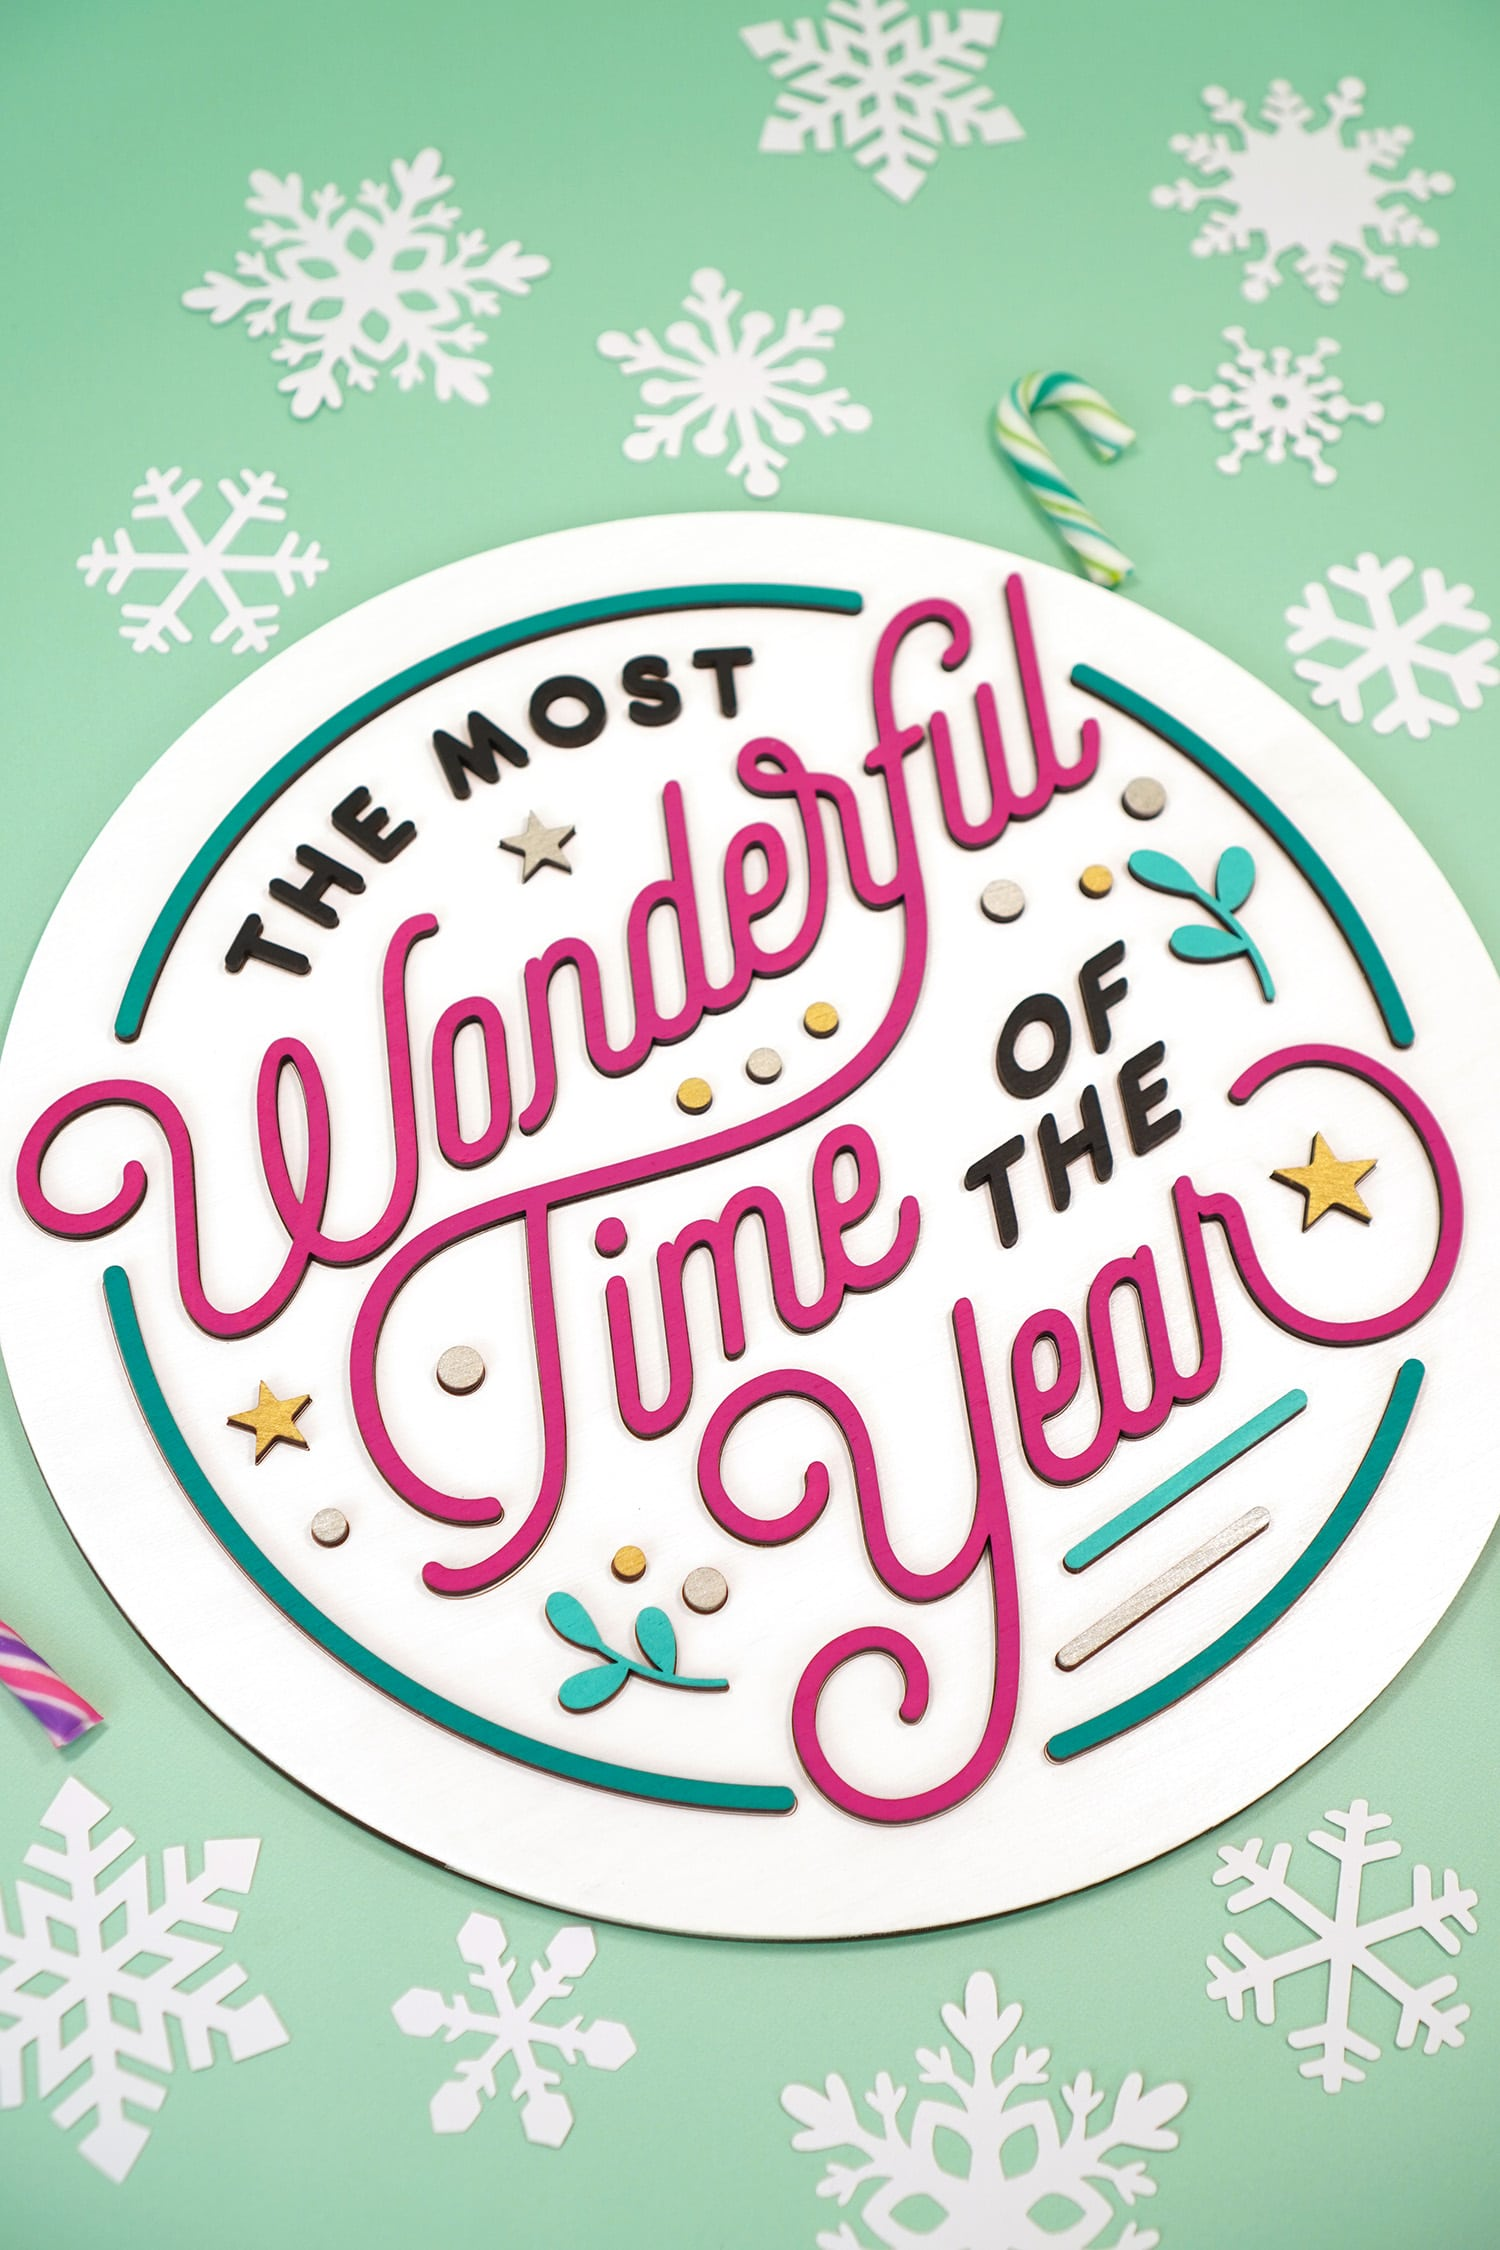 """The Most Wonderful Time of the Year"" Laser Cut Wood Sign on mint green background with paper snowflakes and candy canes"